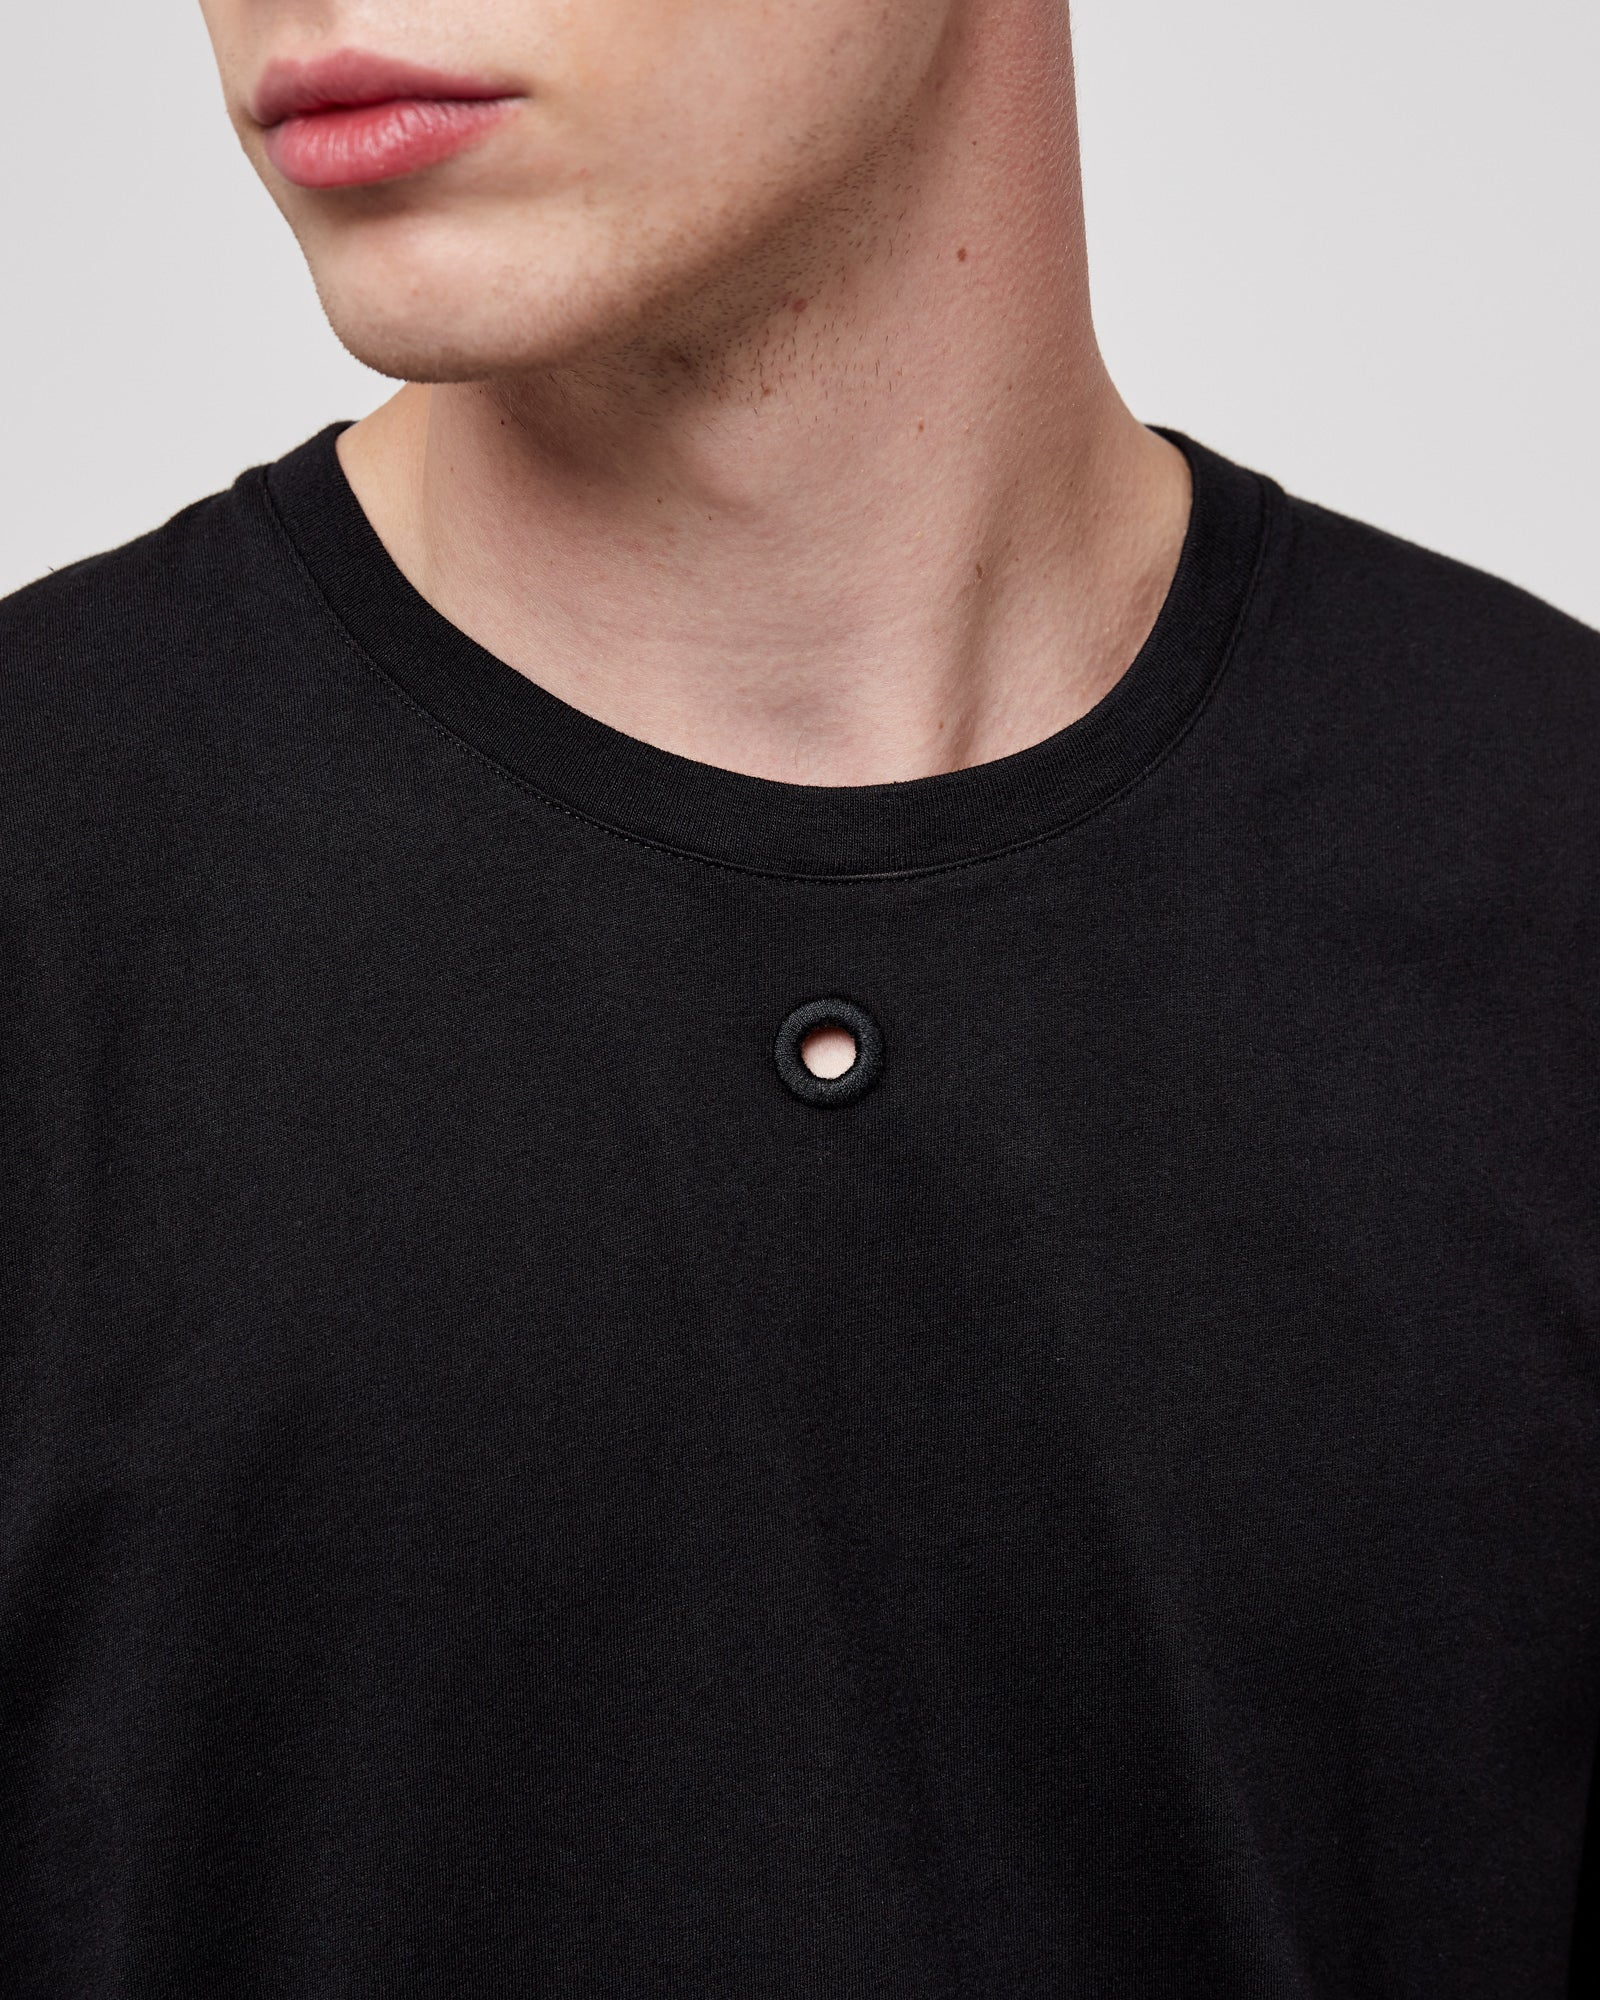 Embroidered Hole T-Shirt in Black